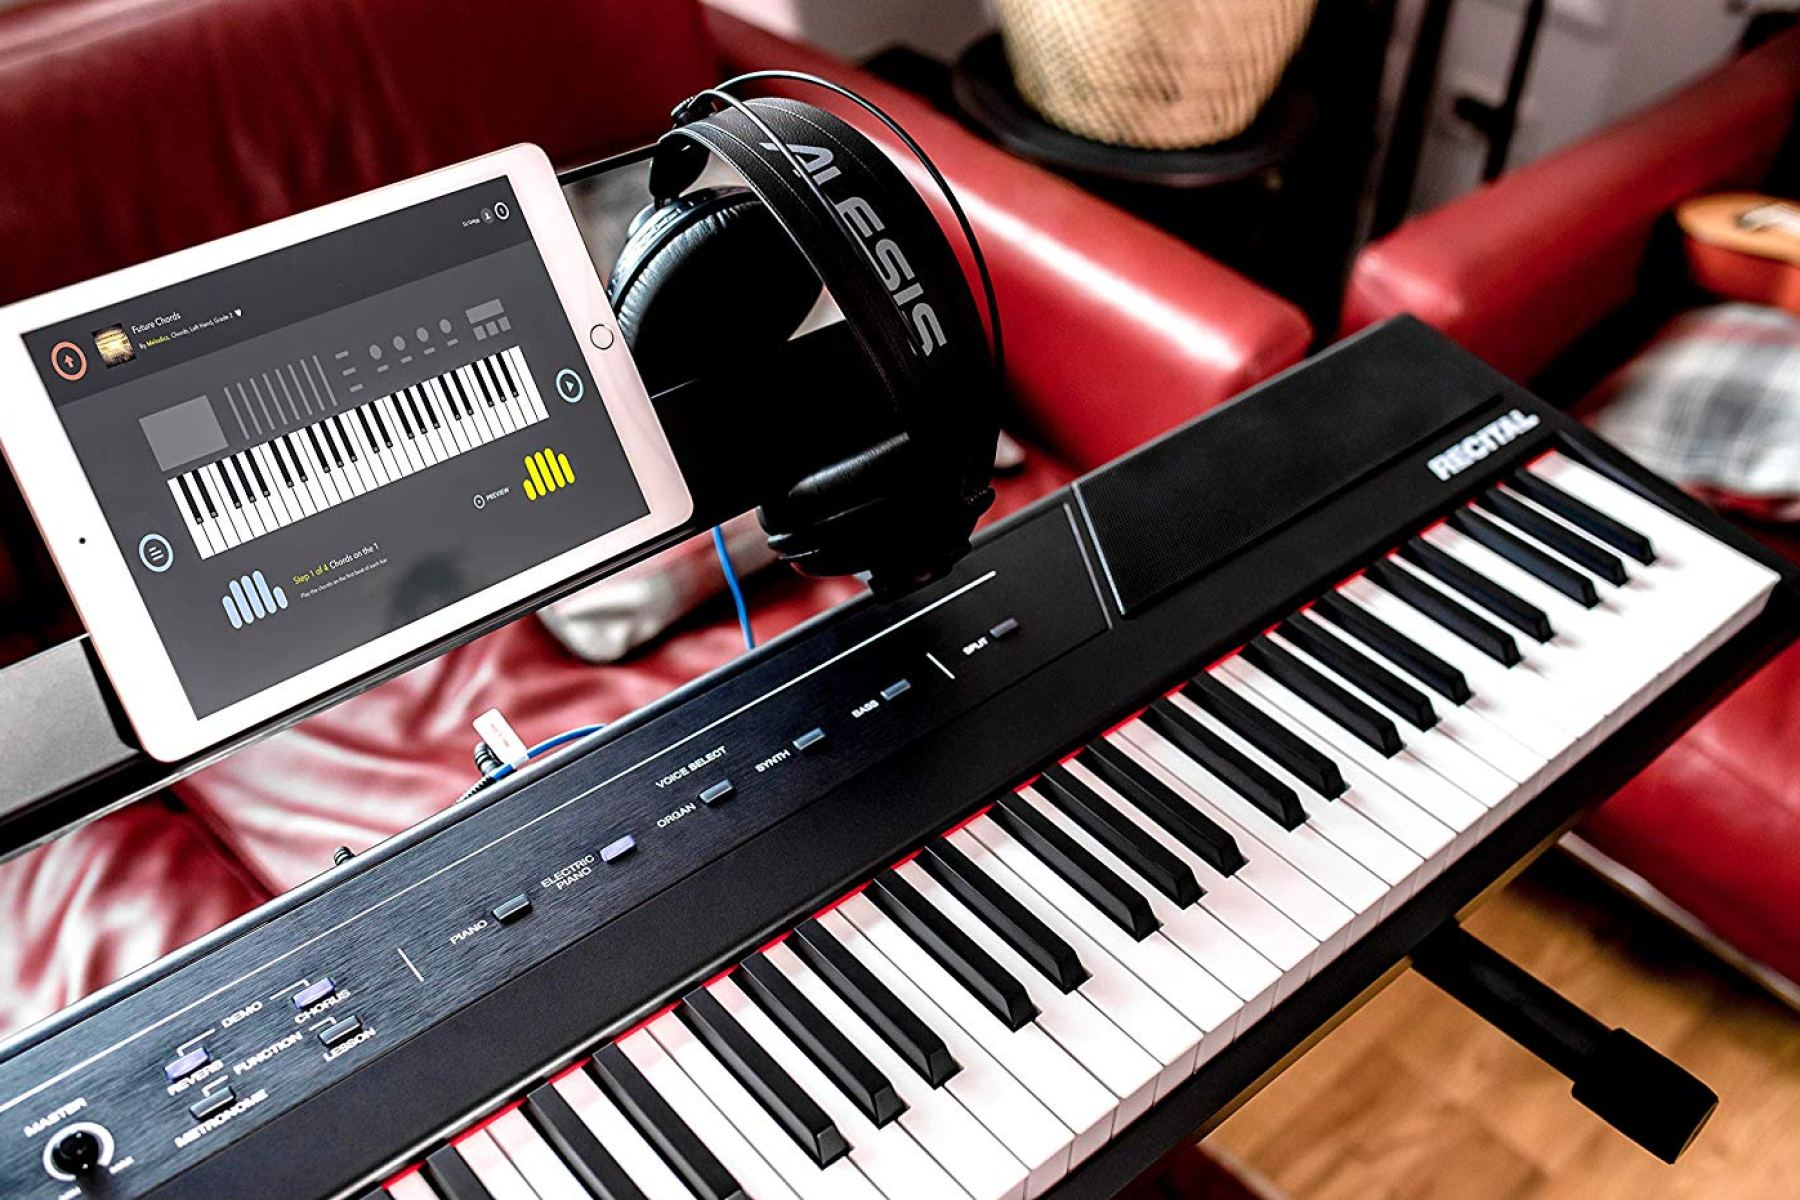 Best Digital Piano 2021 The Best Keyboards 2020: Digital Pianos, Electric Pianos Reviewed